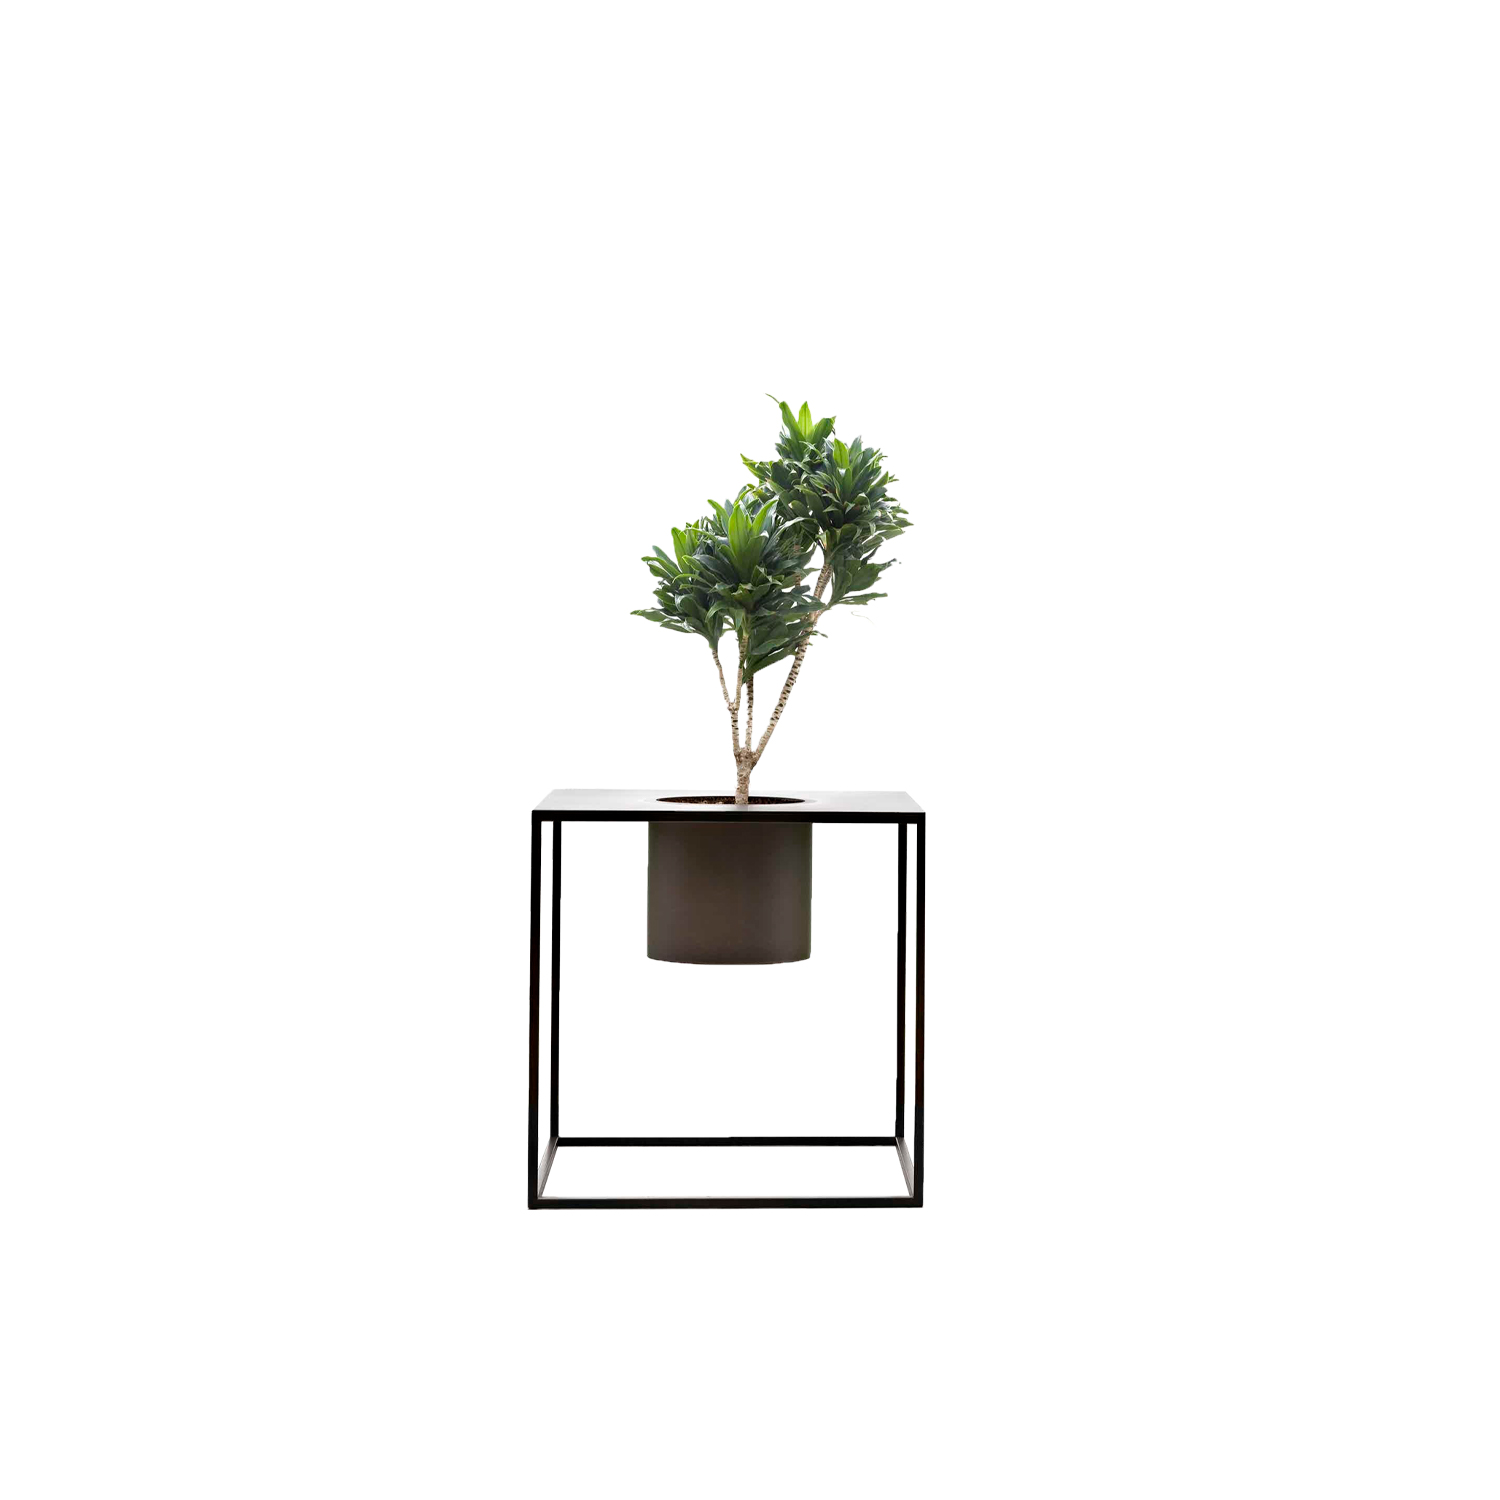 "Riviera Plant Pot - ""I've always been drawn to nature as it manifests its strength in unexpected contexts"".‎ With this, Aldo Cibic built a miniature natural landscape, poetically made of structures, containers and objects to house small gardens, both indoors and outdoors.‎ With a minimal, simple design and a thin, barely-there frame, the lightness of the lines converges to exalt the ezxpressiveness of the metals and the sensory nature of their surfaces.‎